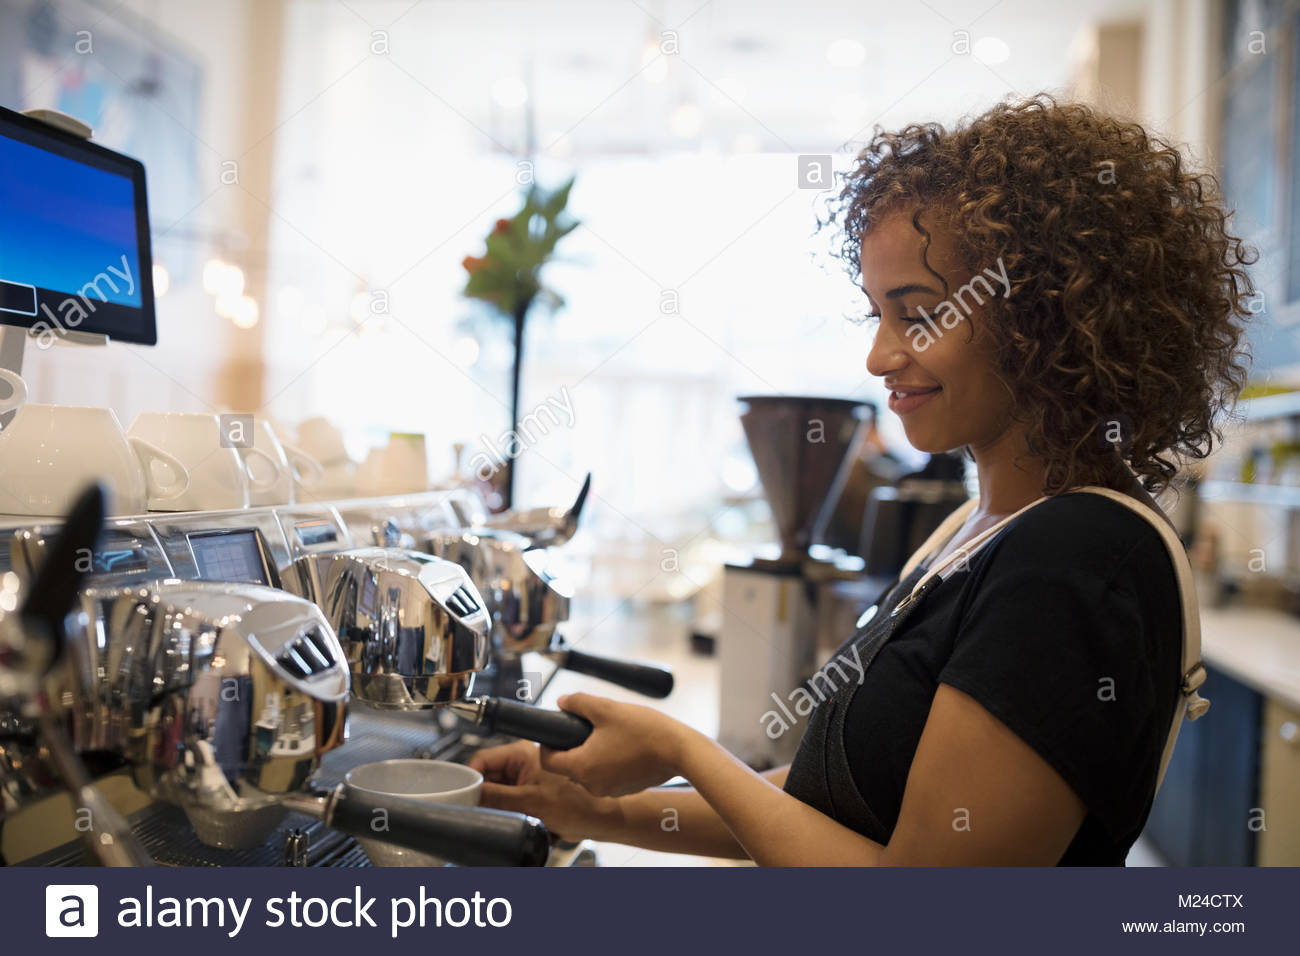 Smiling female barista making coffee at espresso machine in cafe - Stock Image